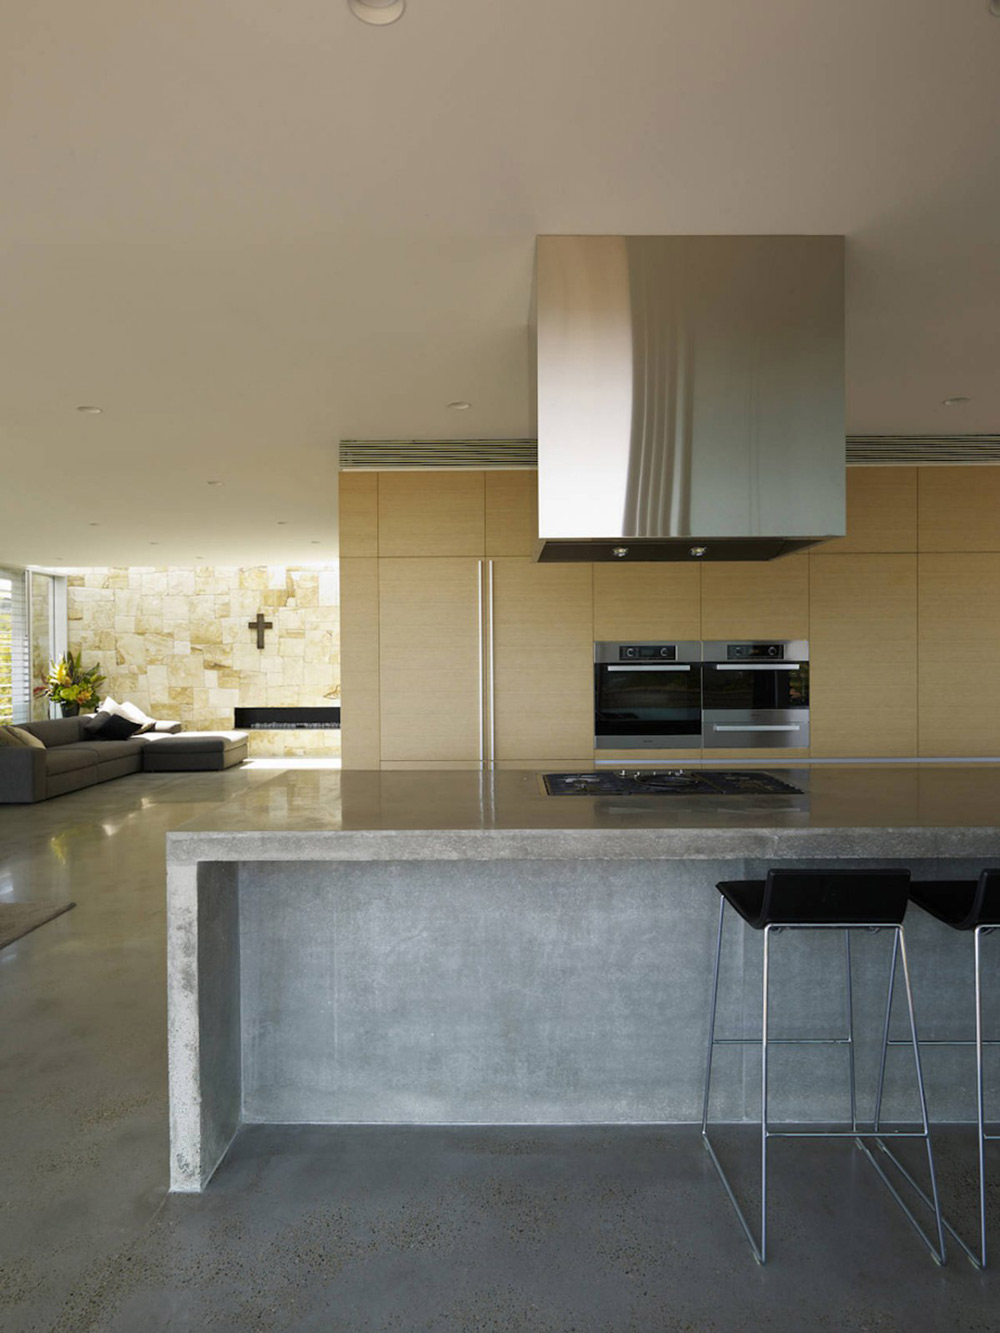 Kitchen Island, Vaucluse House in Sydney, Australia by MPR Design Group